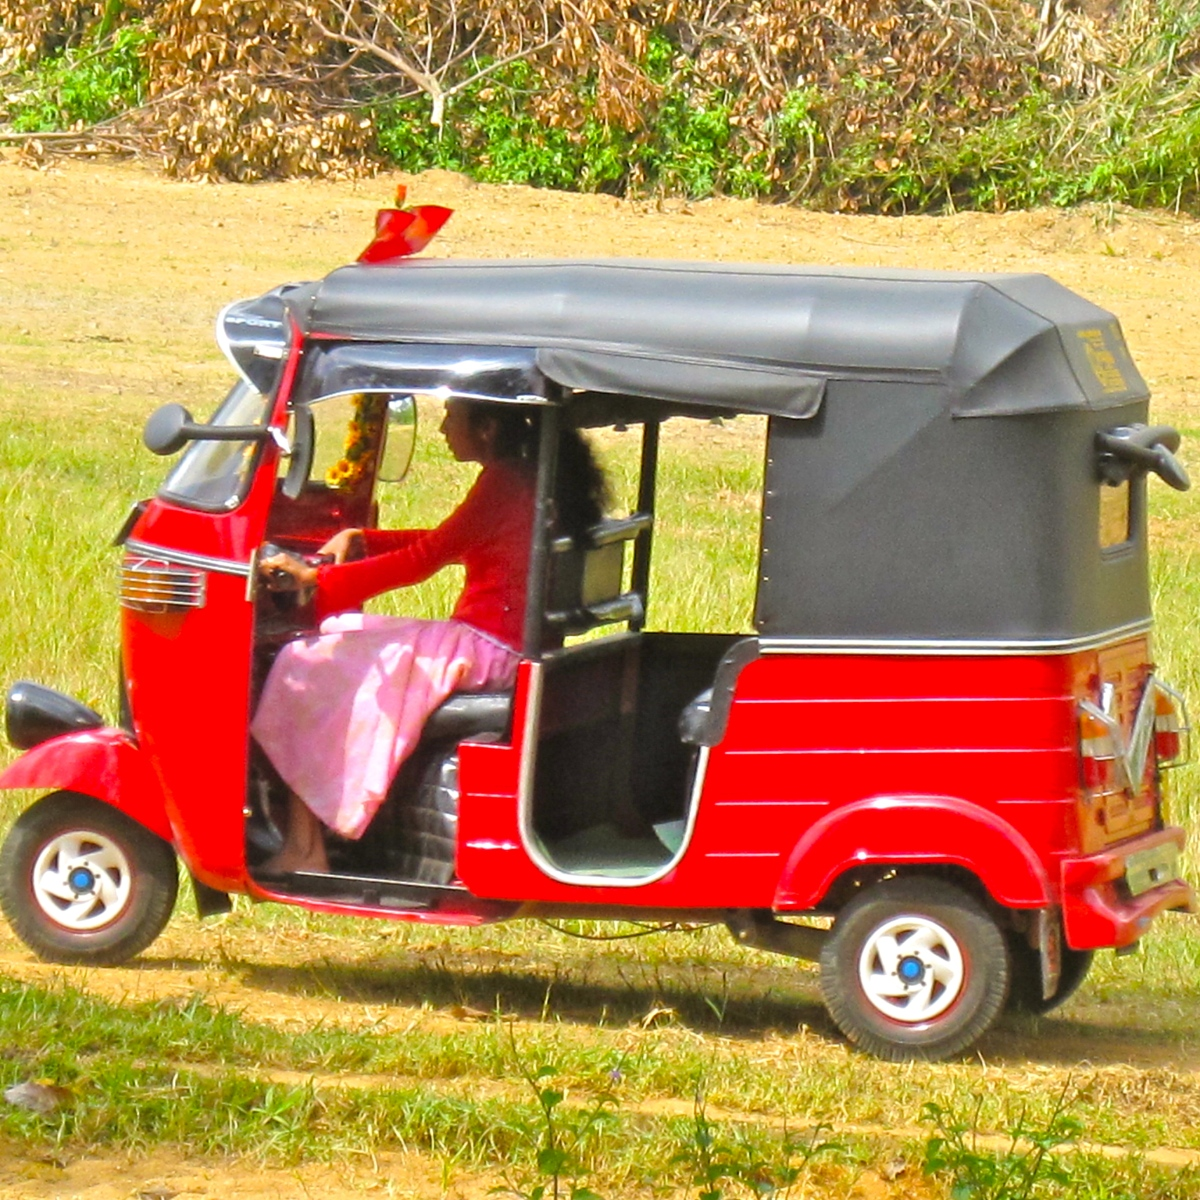 The Tuk-Tuk Lesson